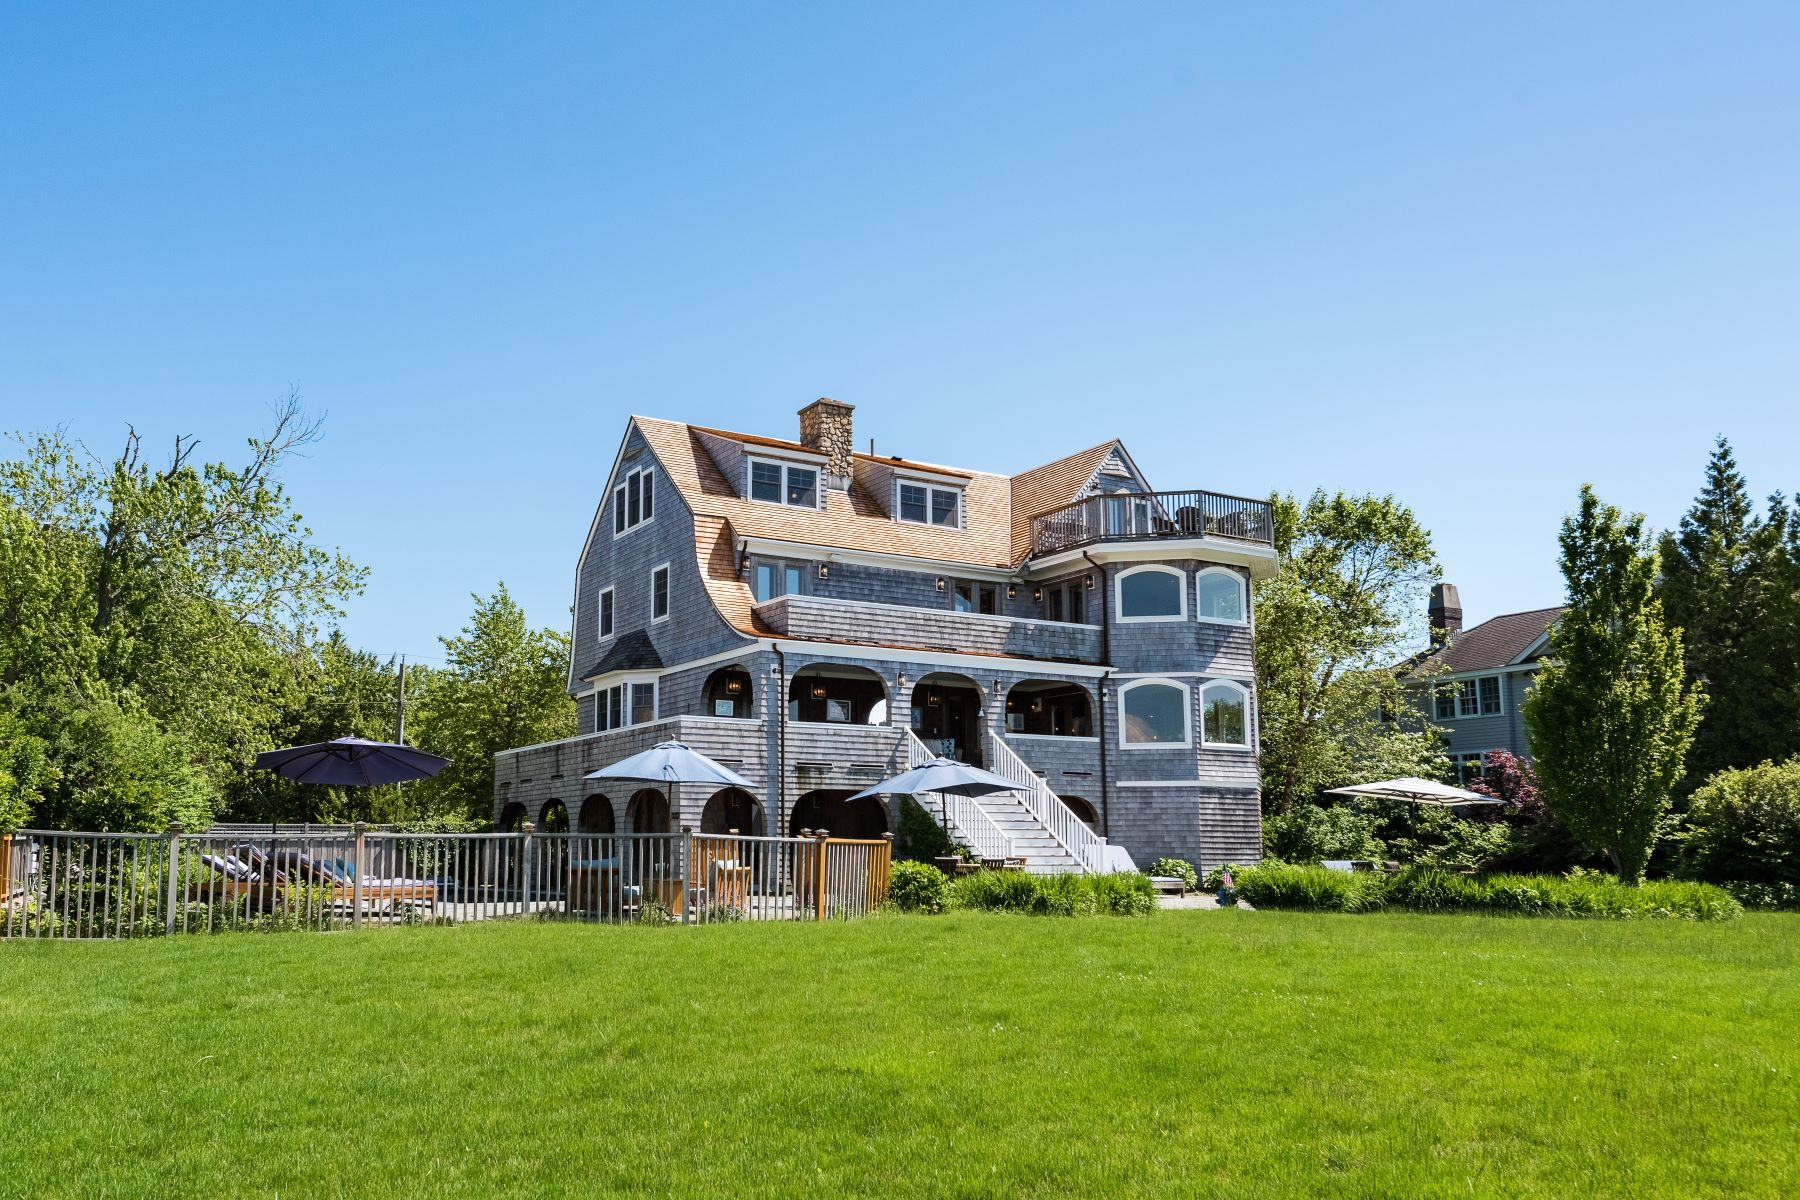 Single Family Homes for Sale at 31 Pasadena Avenue, Westerly, RI 31 Pasadena Avenue Westerly, Rhode Island 02891 United States